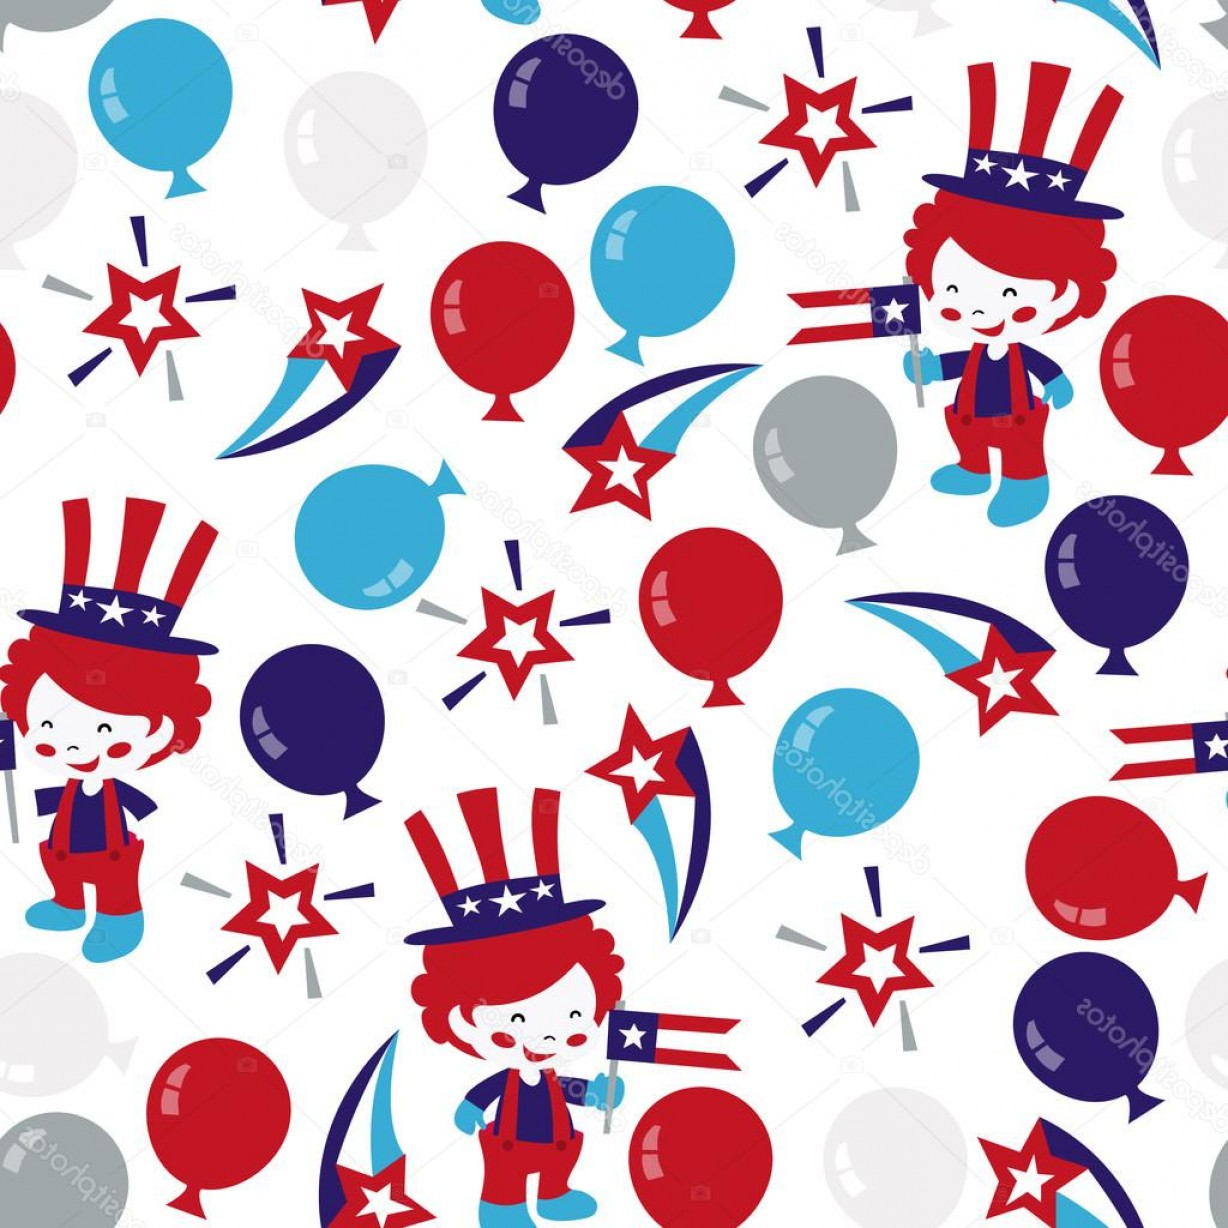 Americana Vector Art: Stock Illustration Americana Patriotic Seamless Pattern Background